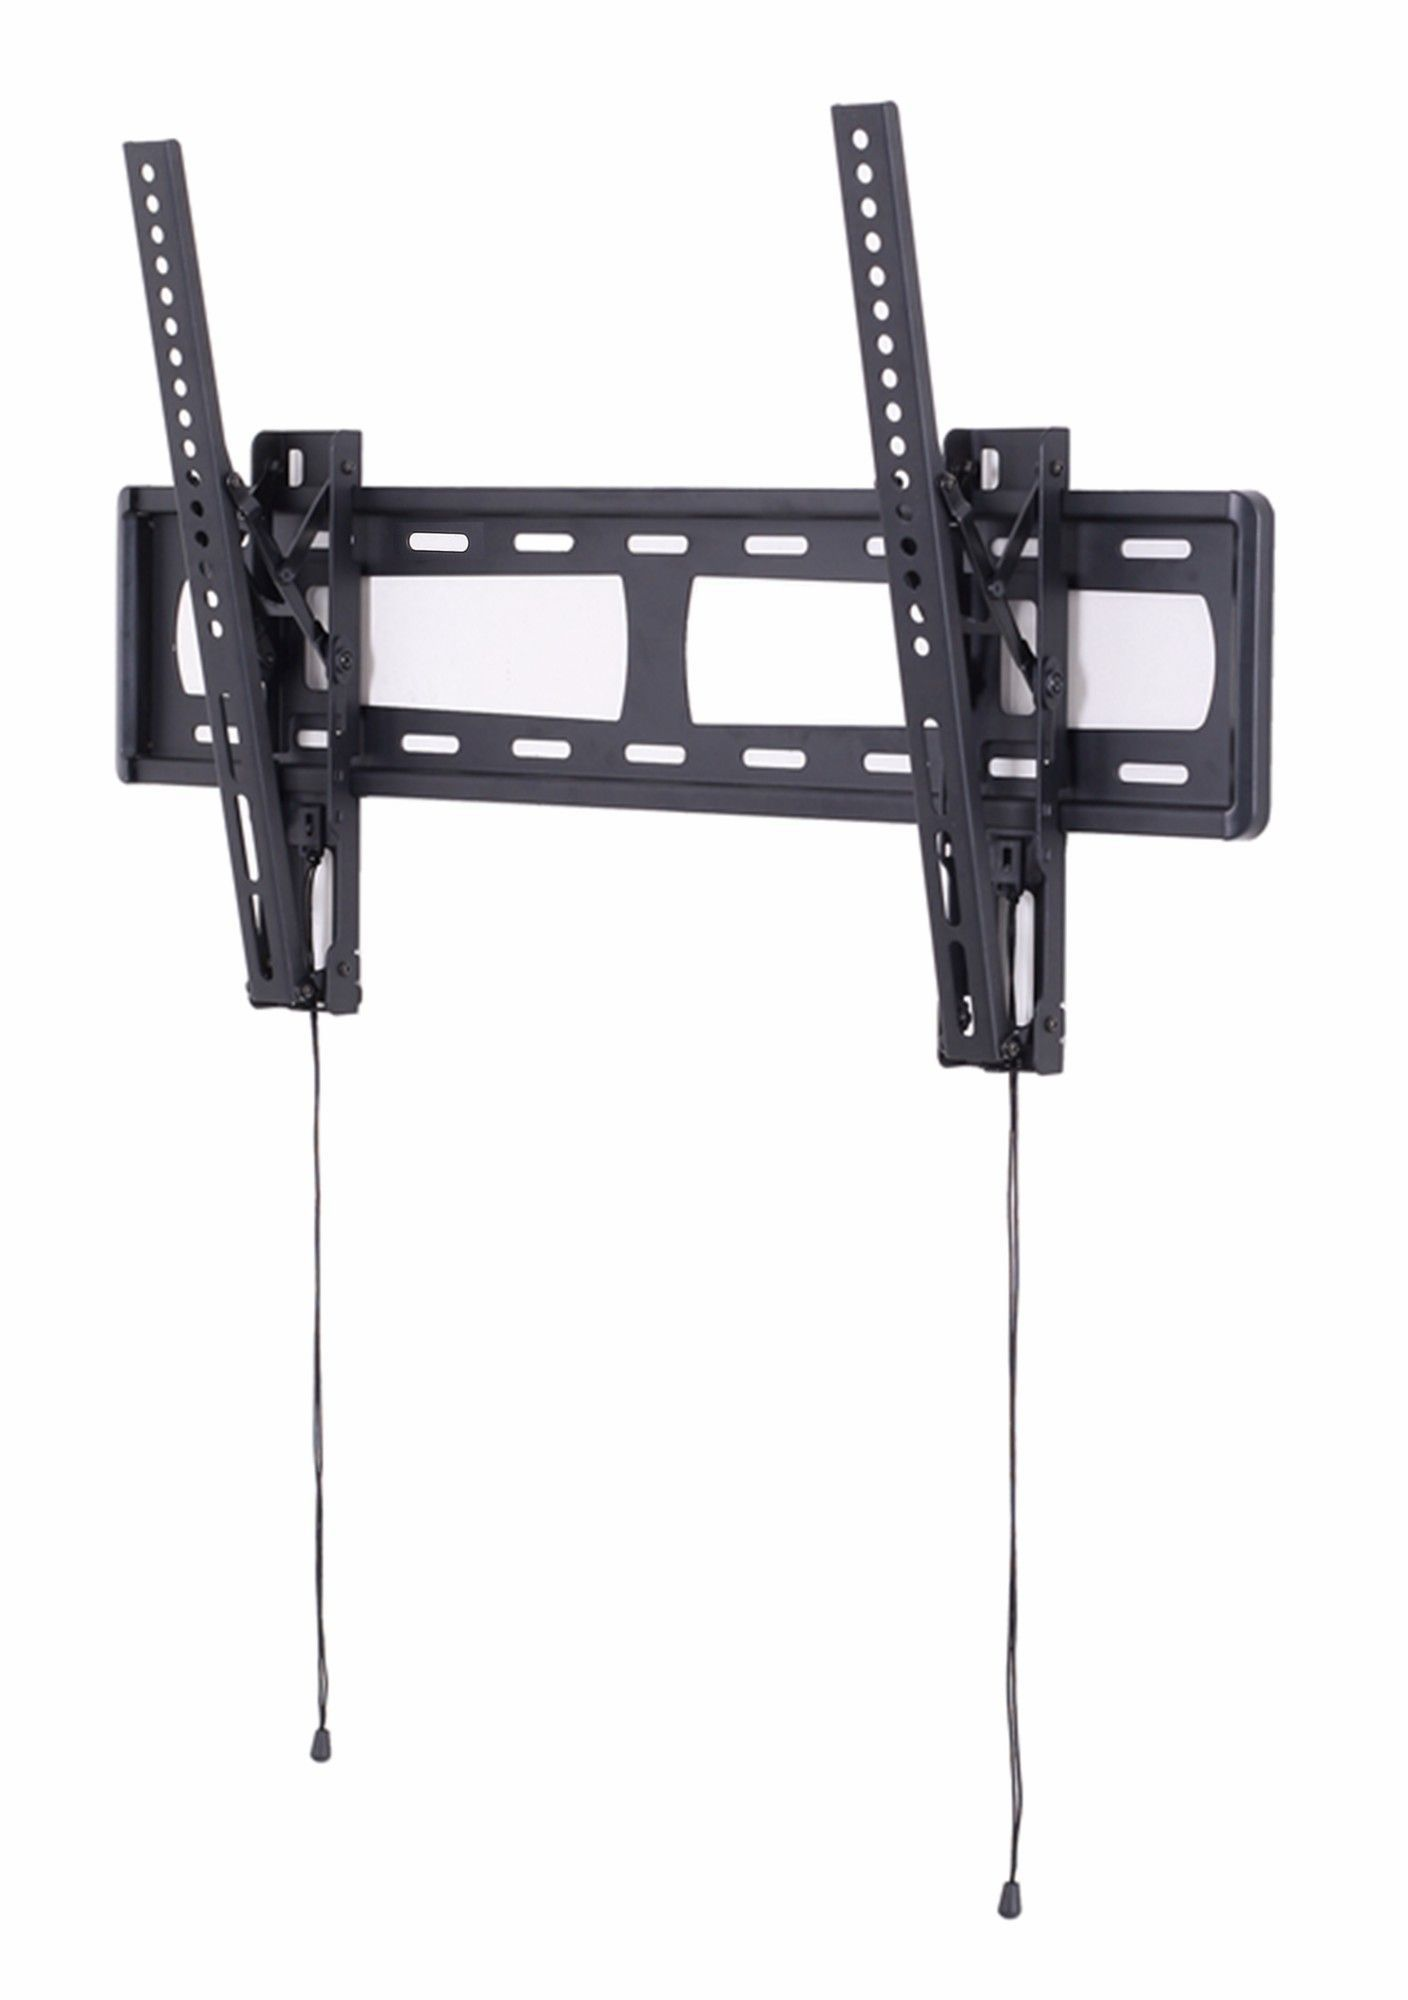 Tygerclaw Tilting Wall Mount For 32 65 Flat Panel Screen Tv Mounts Ceiling Tv Wall Mount